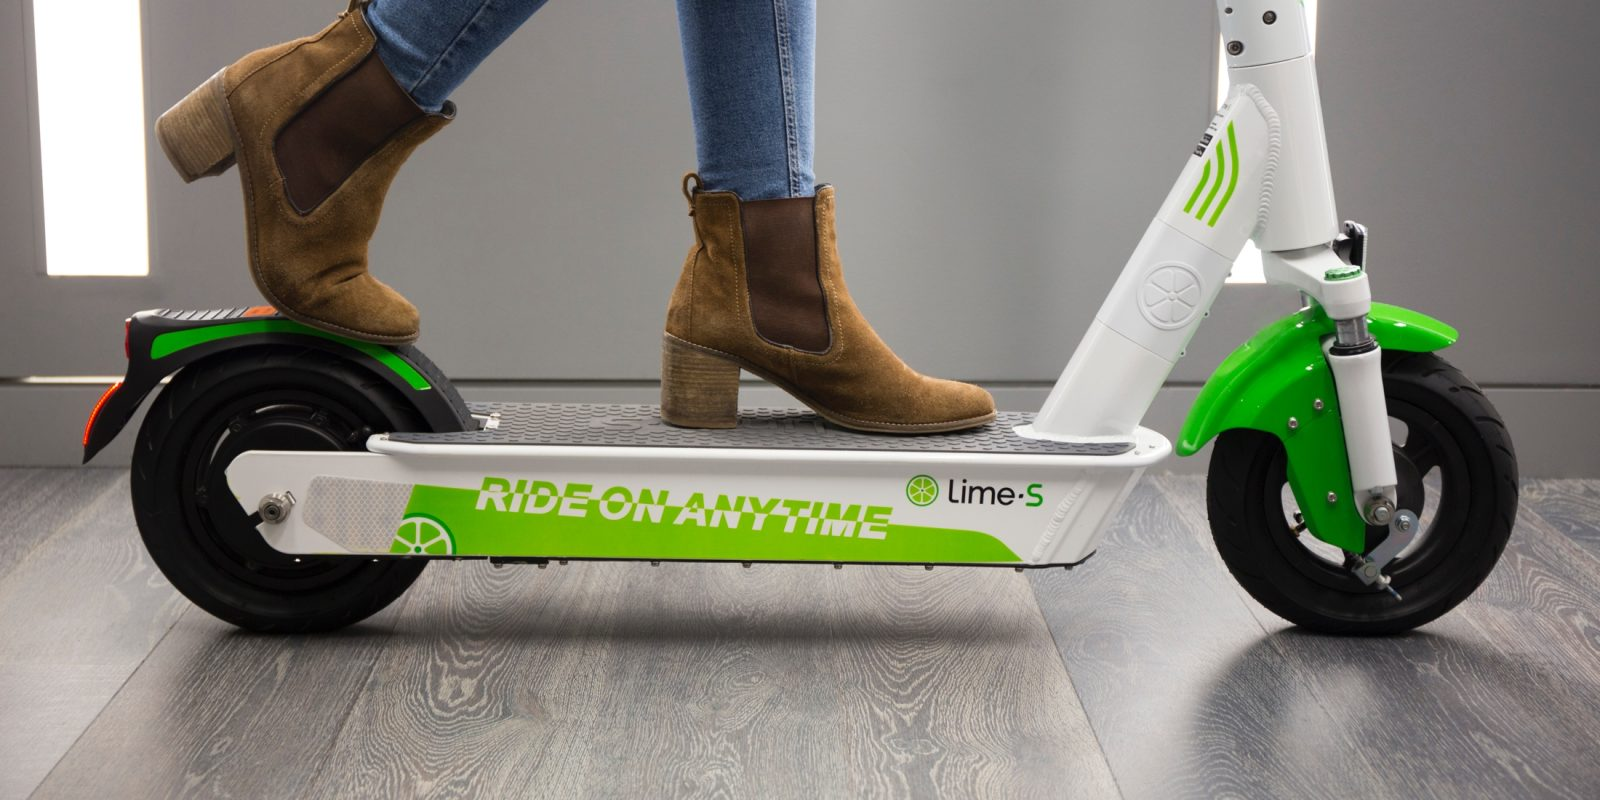 lime unveils new electric scooter fuels the e scooter arms race [ 1600 x 800 Pixel ]